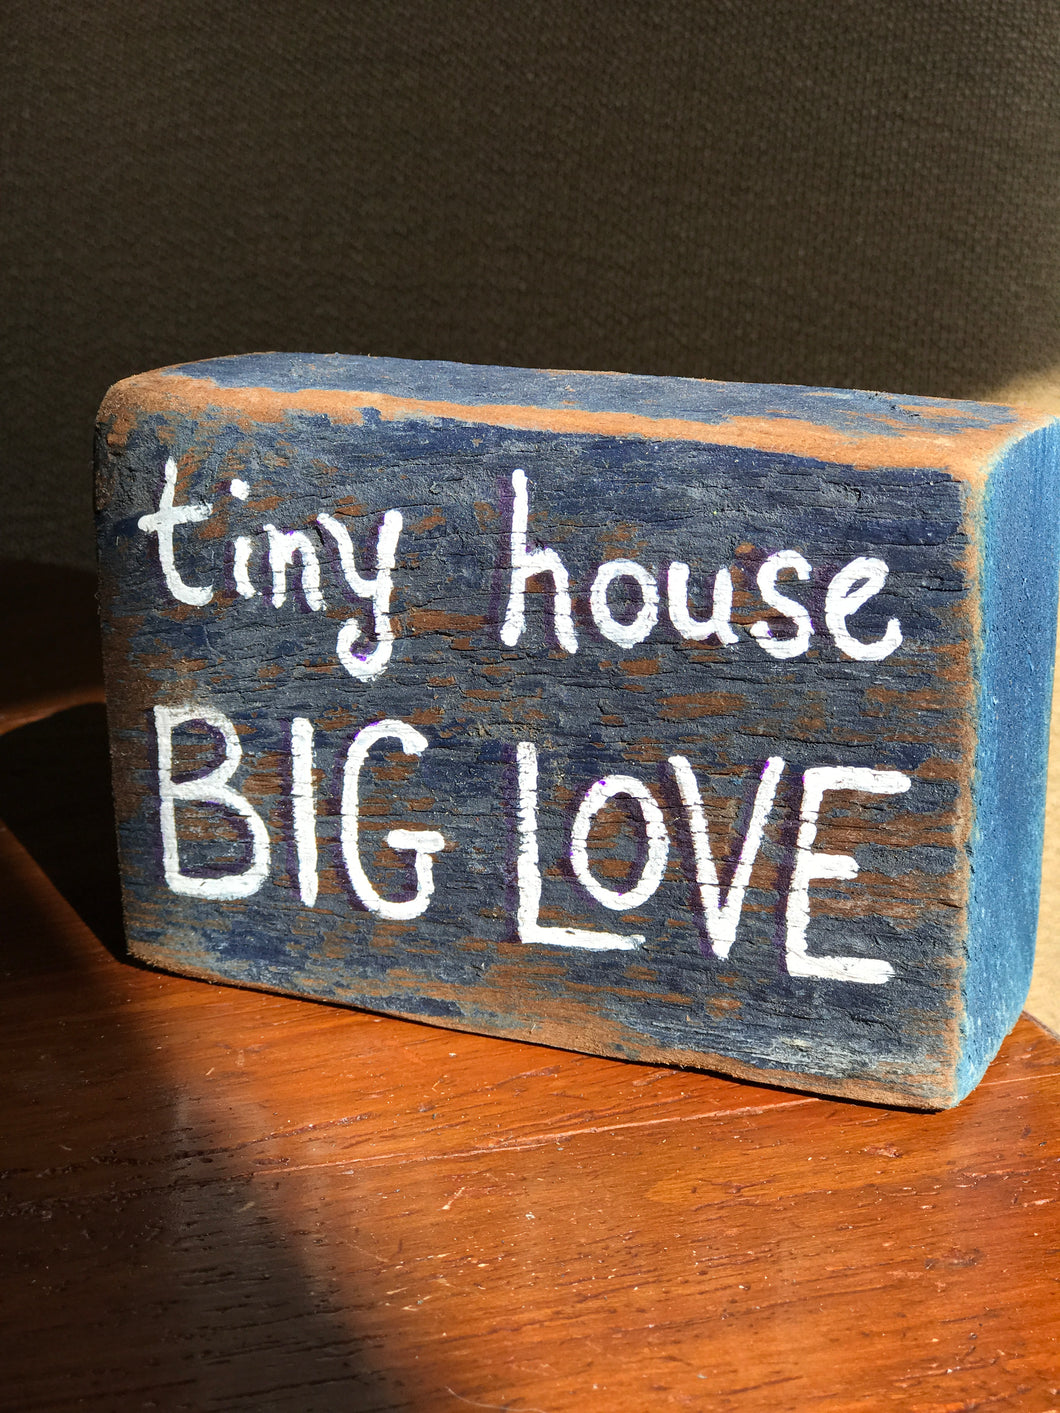 Tiny House Big Love - Upcycled Hand-painted Wood Block